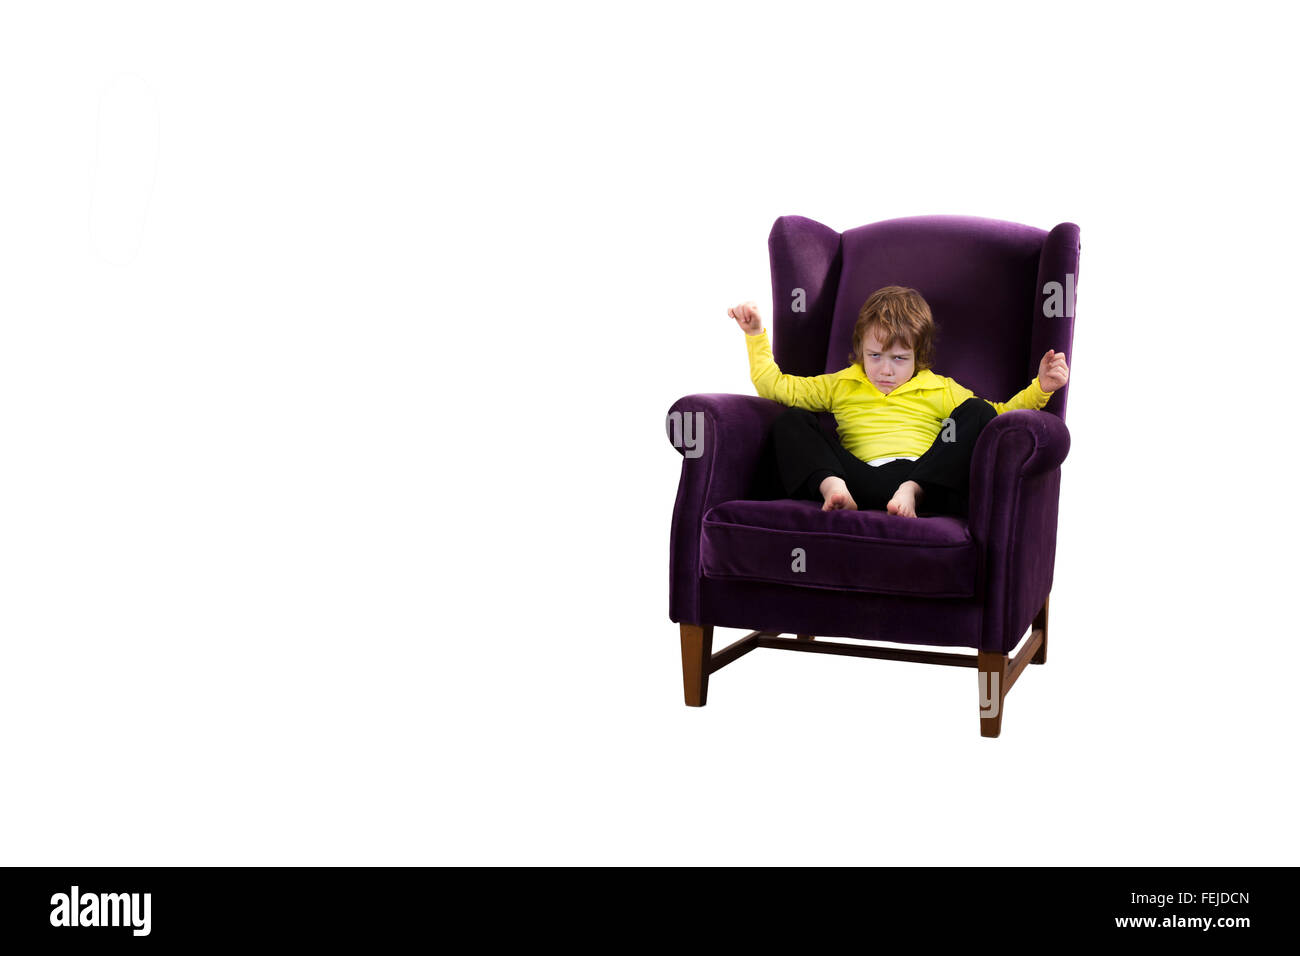 angry red hair child sitting on the purple couch - Stock Image